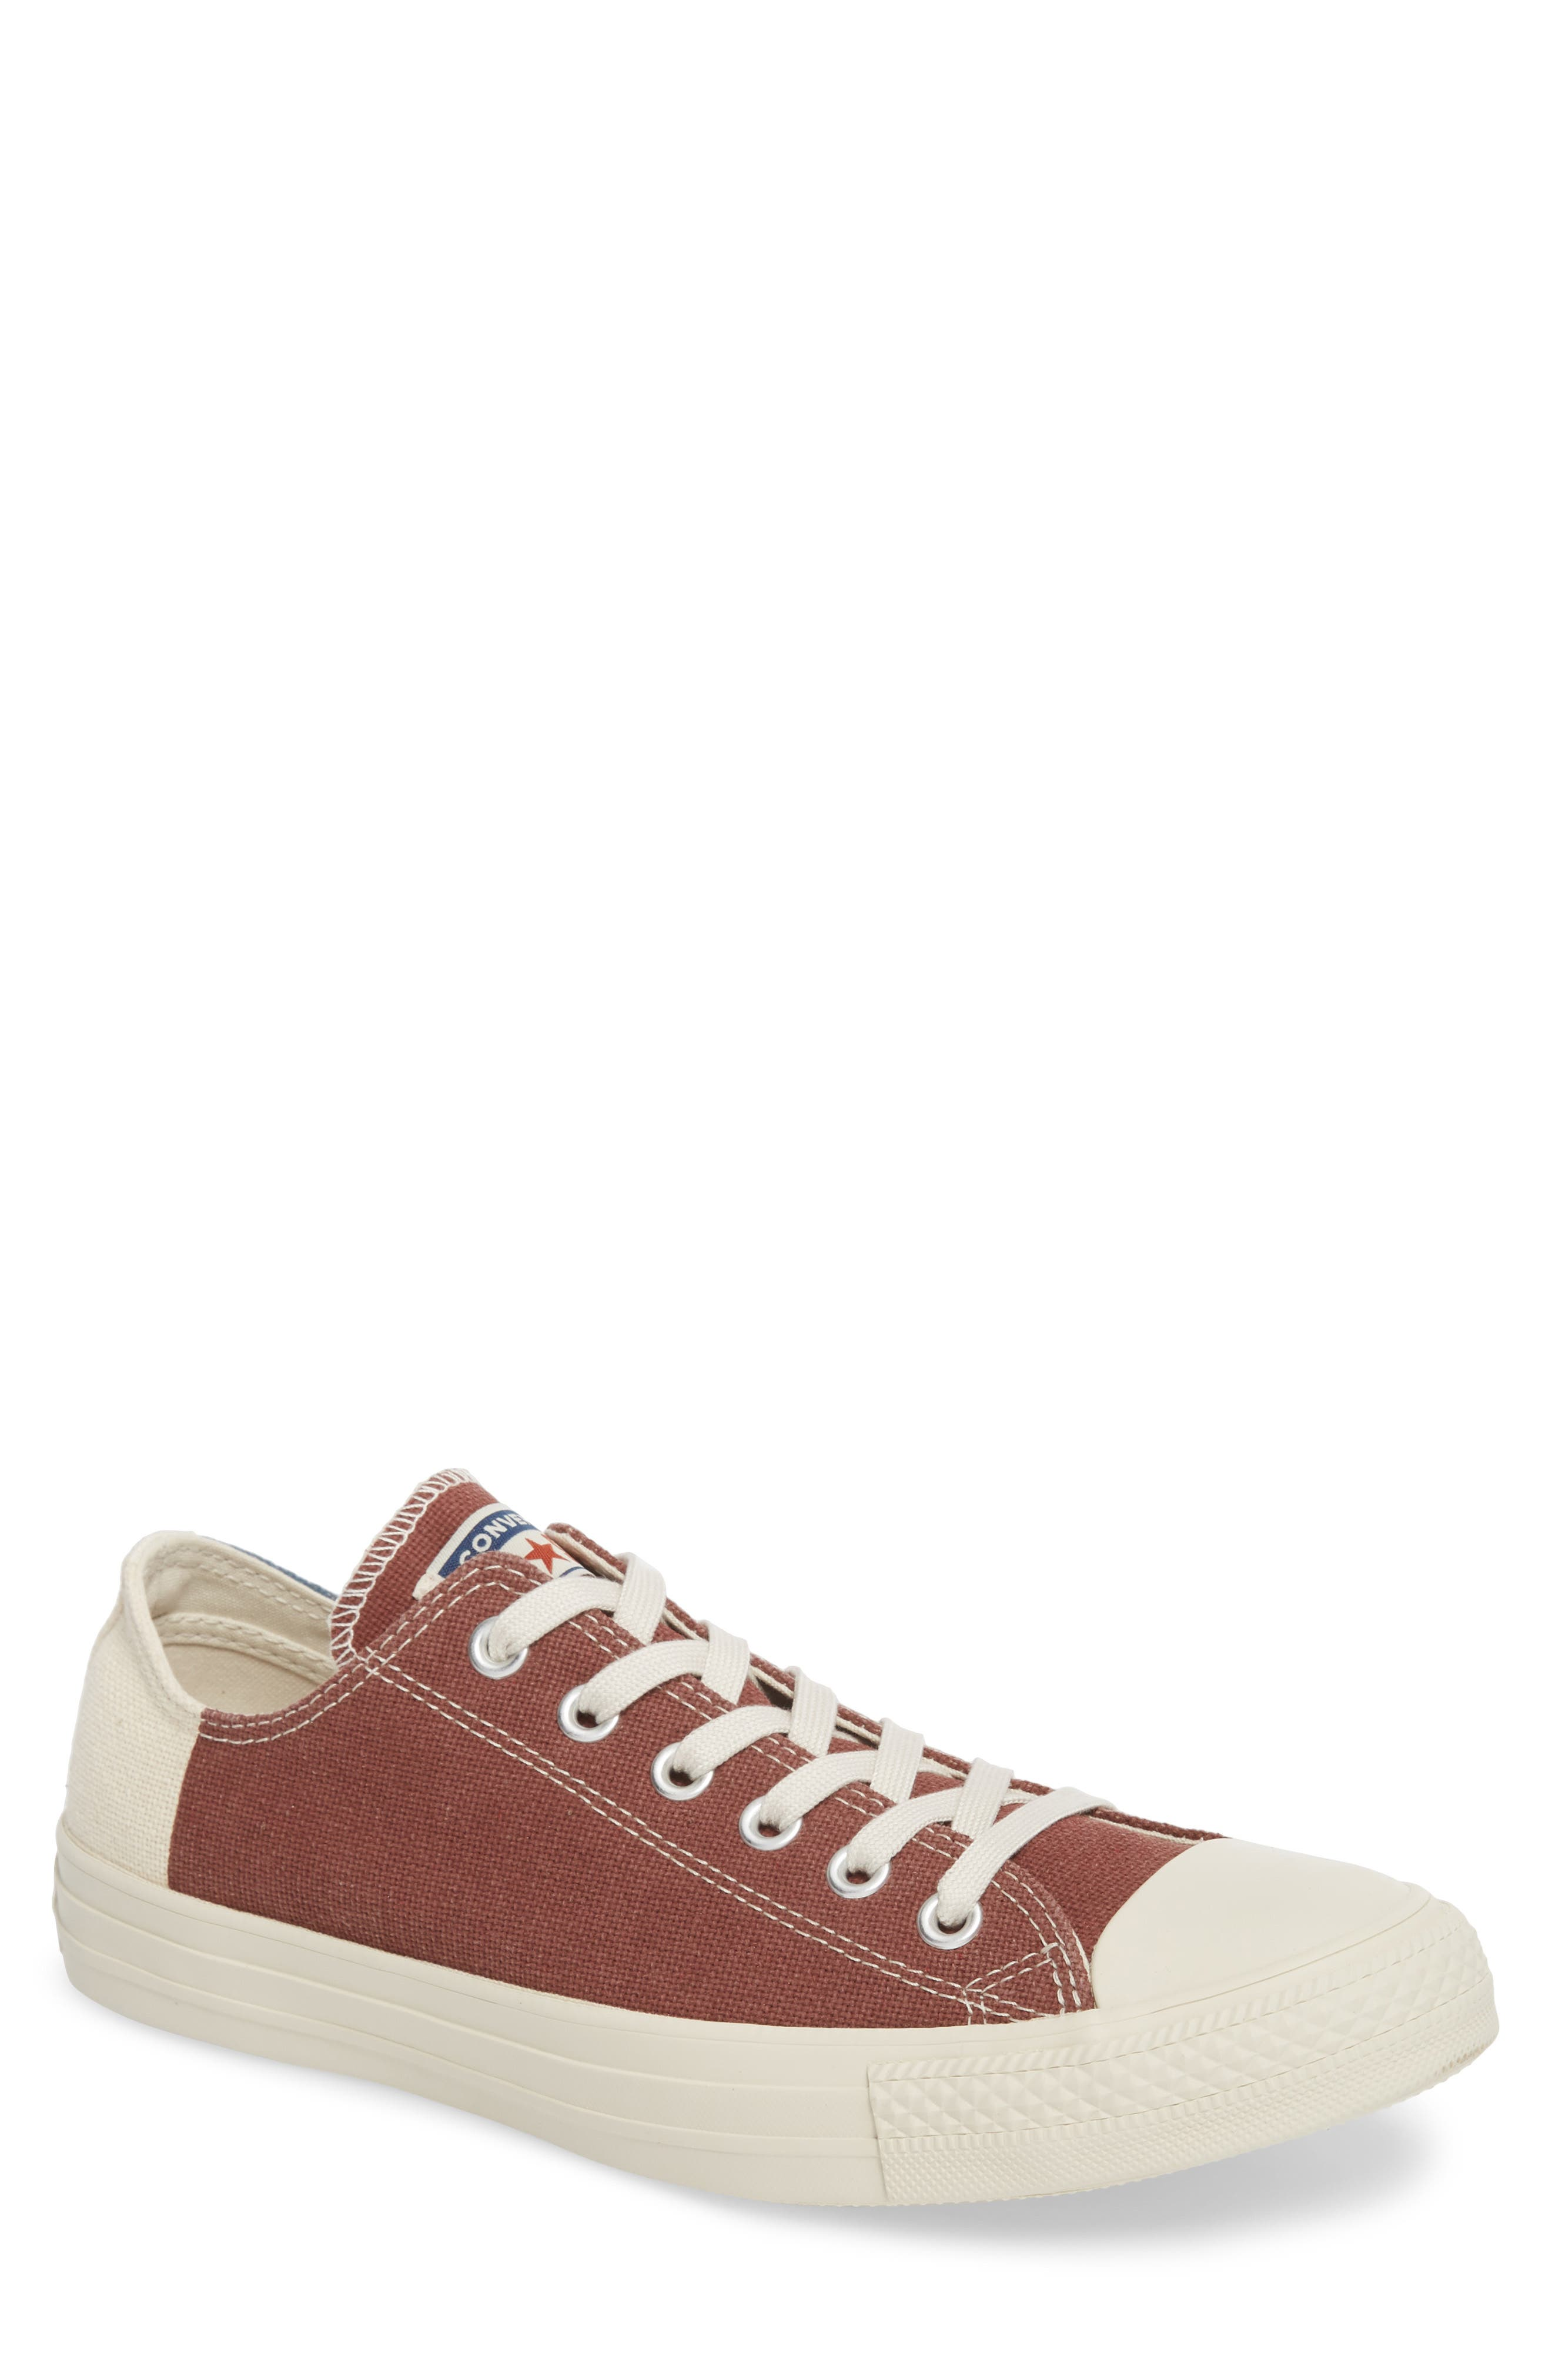 Chuck Taylor<sup>®</sup> All Star<sup>®</sup> Jute Americana Low Top Sneaker,                         Main,                         color, Aegean Storm